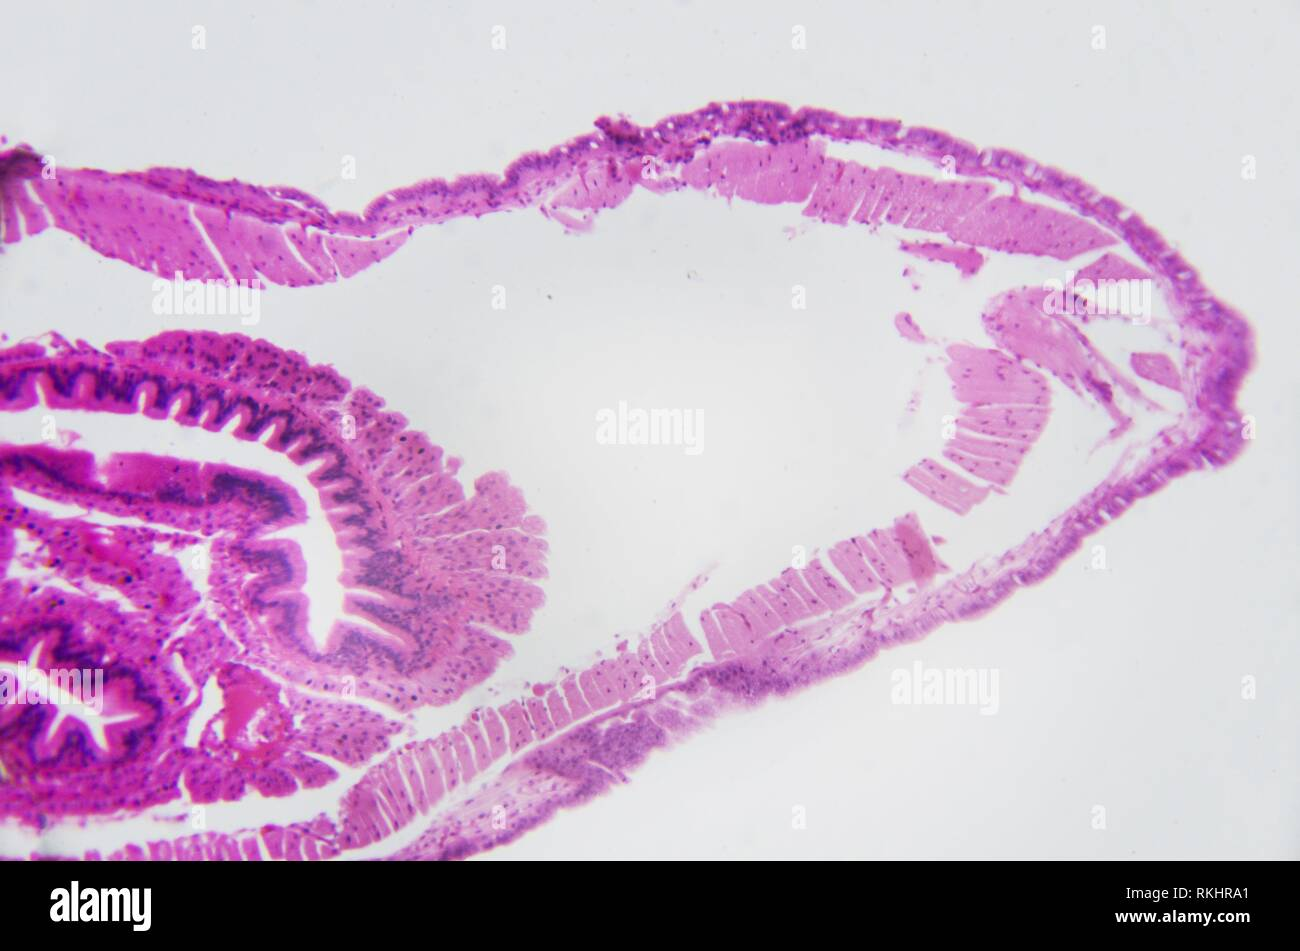 Microscopic photography. Earthworm, transversal section. - Stock Image